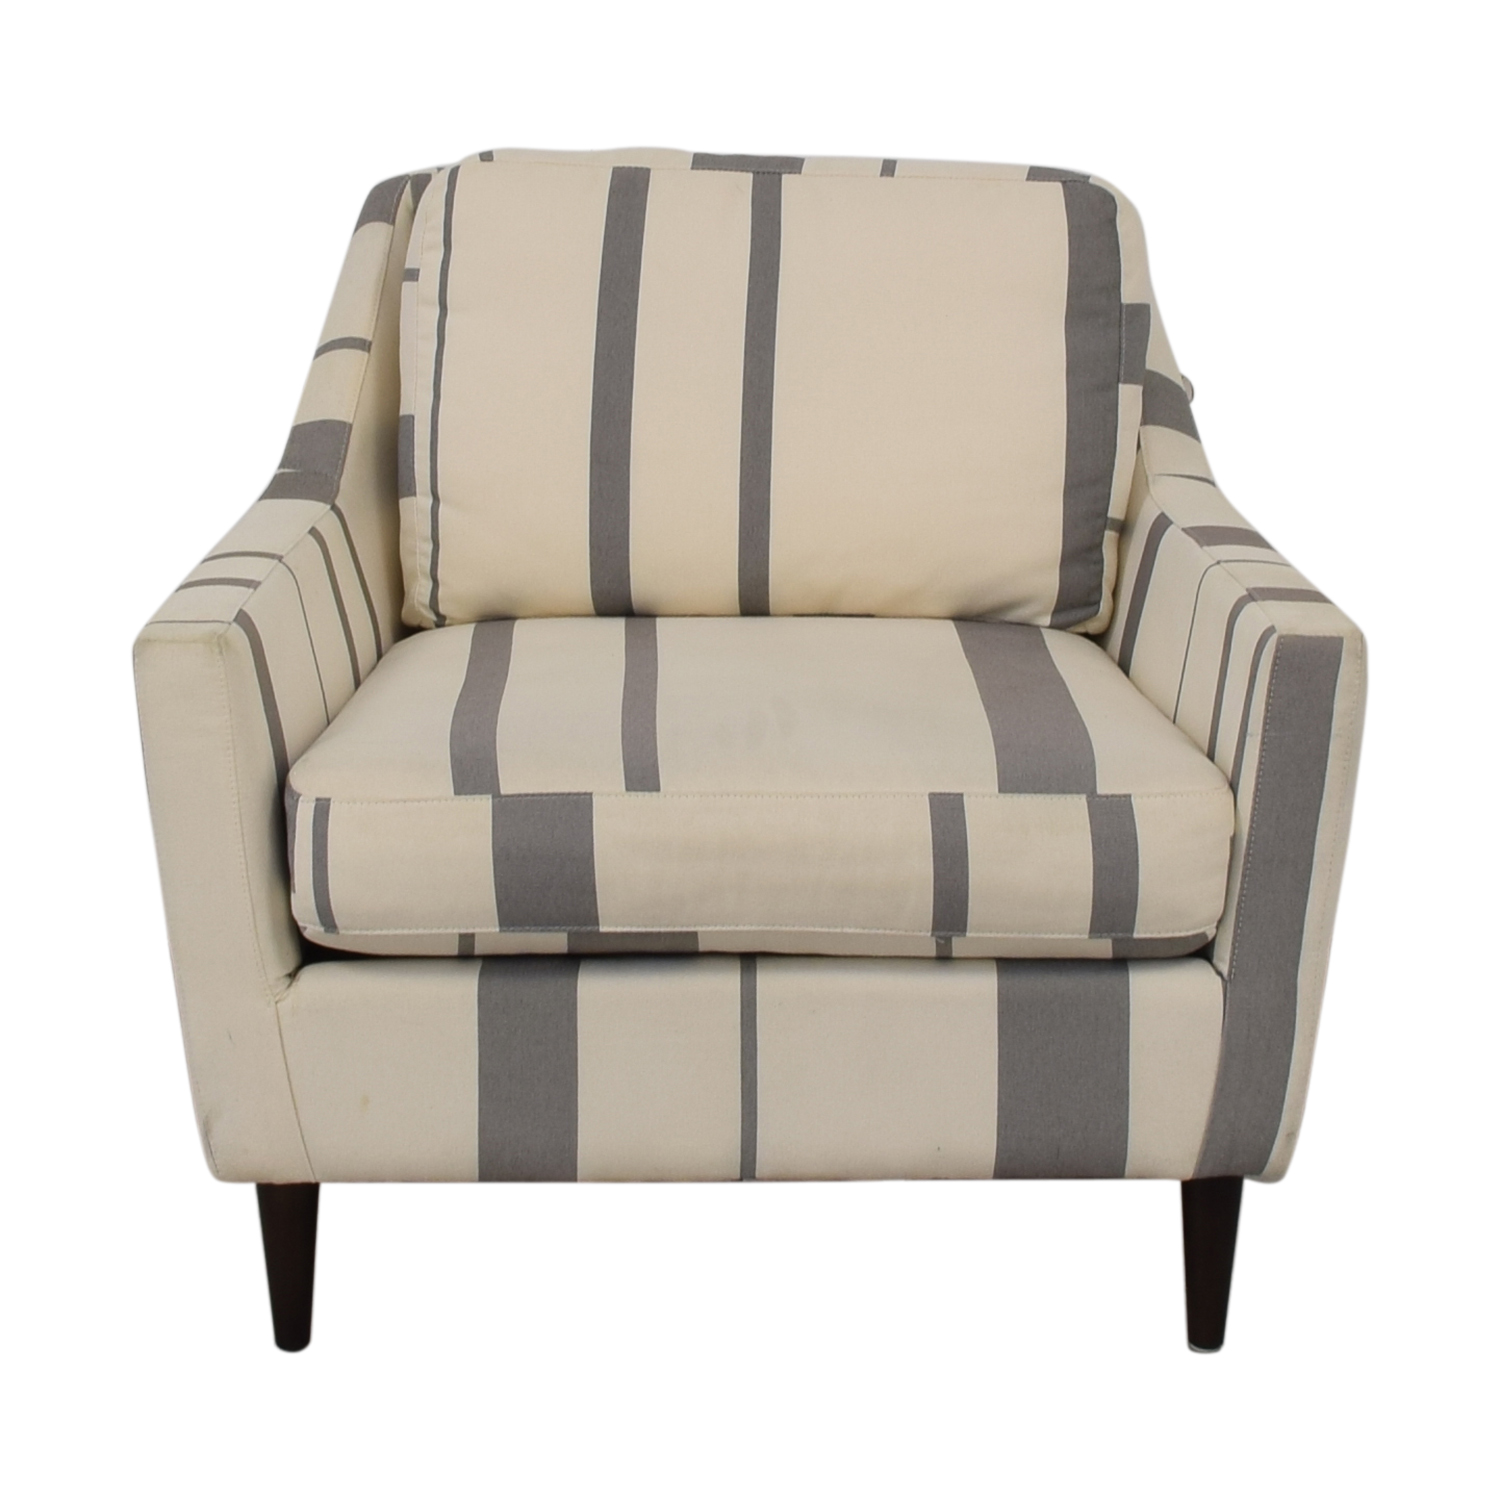 78 Off West Elm West Elm Everett Grey And White Striped